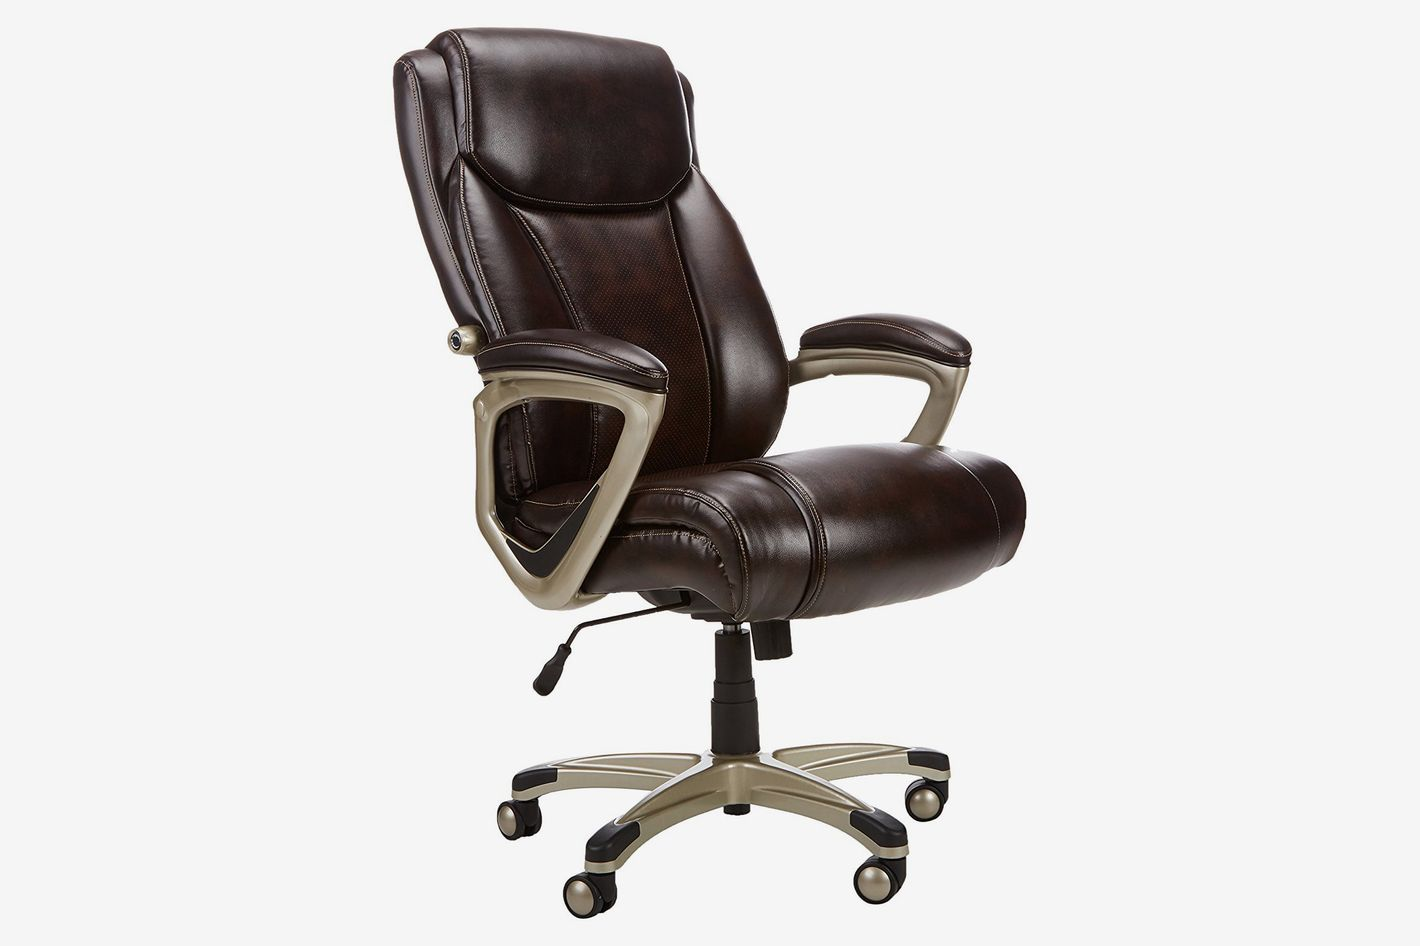 Basics Brown Office Chair For Tall People